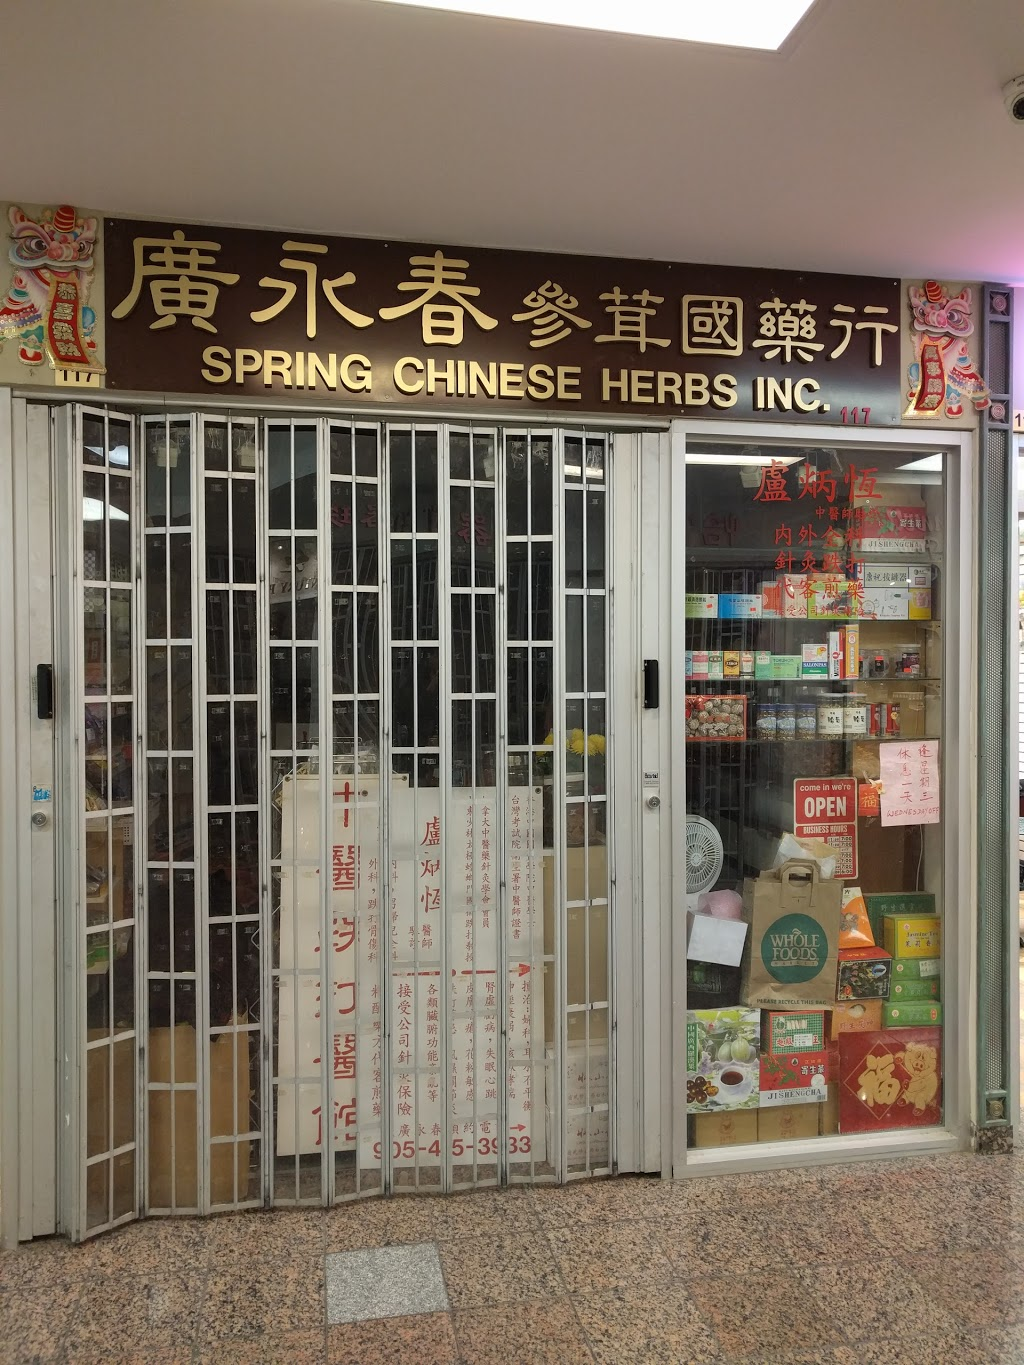 Spring Chinese Herbs Inc | health | 398 Ferrier St, Markham, ON L3R 2Z5, Canada | 9054153933 OR +1 905-415-3933